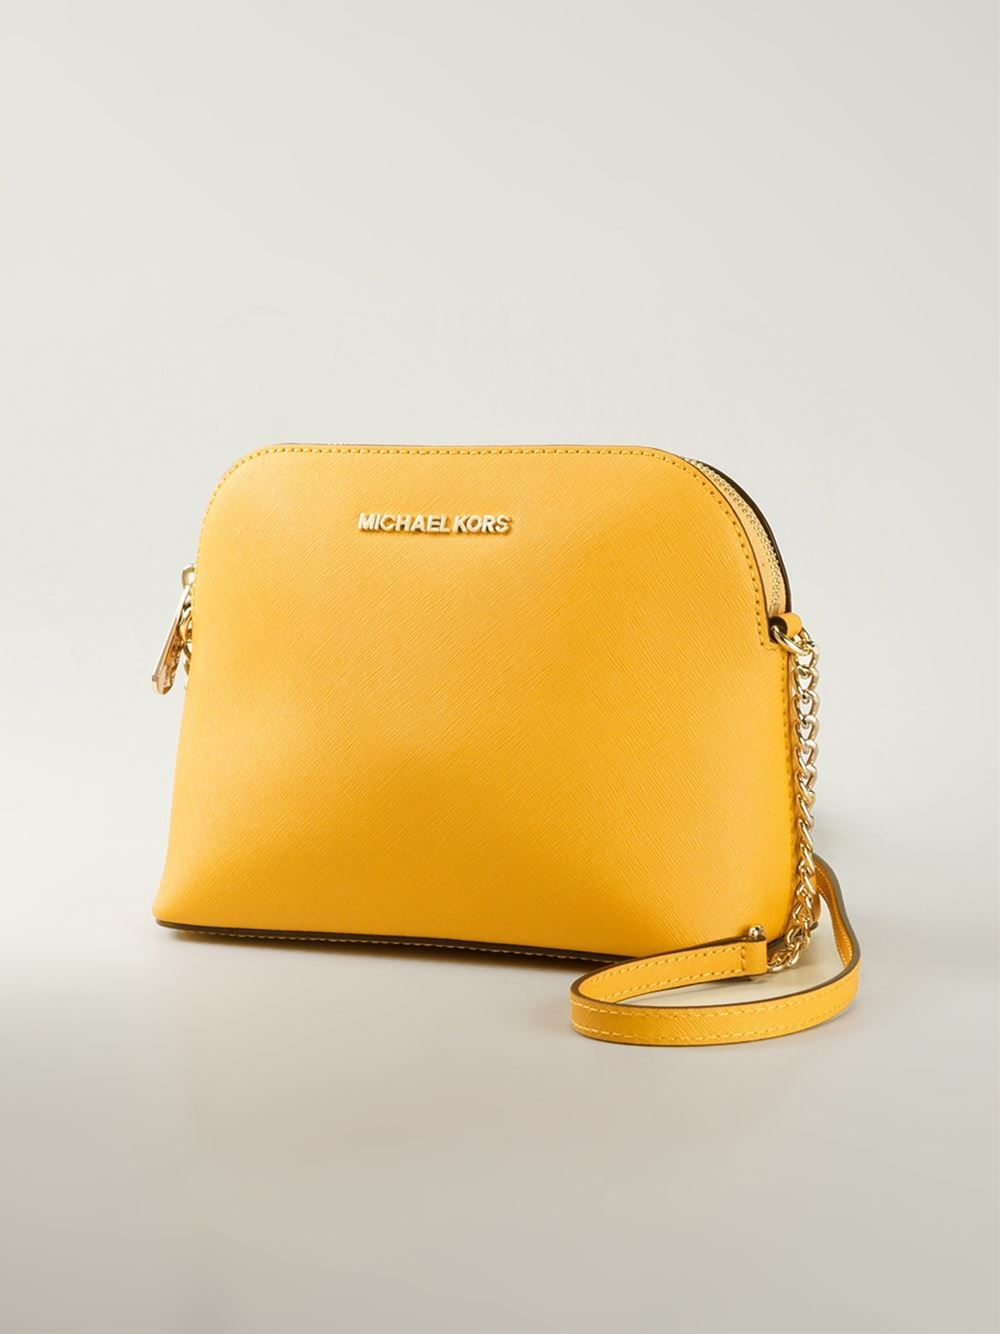 6be38ab5774e Michael kors Cindy Large Calf-Leather Cross-Body Bag in Yellow (yellow &  orange) | Lyst